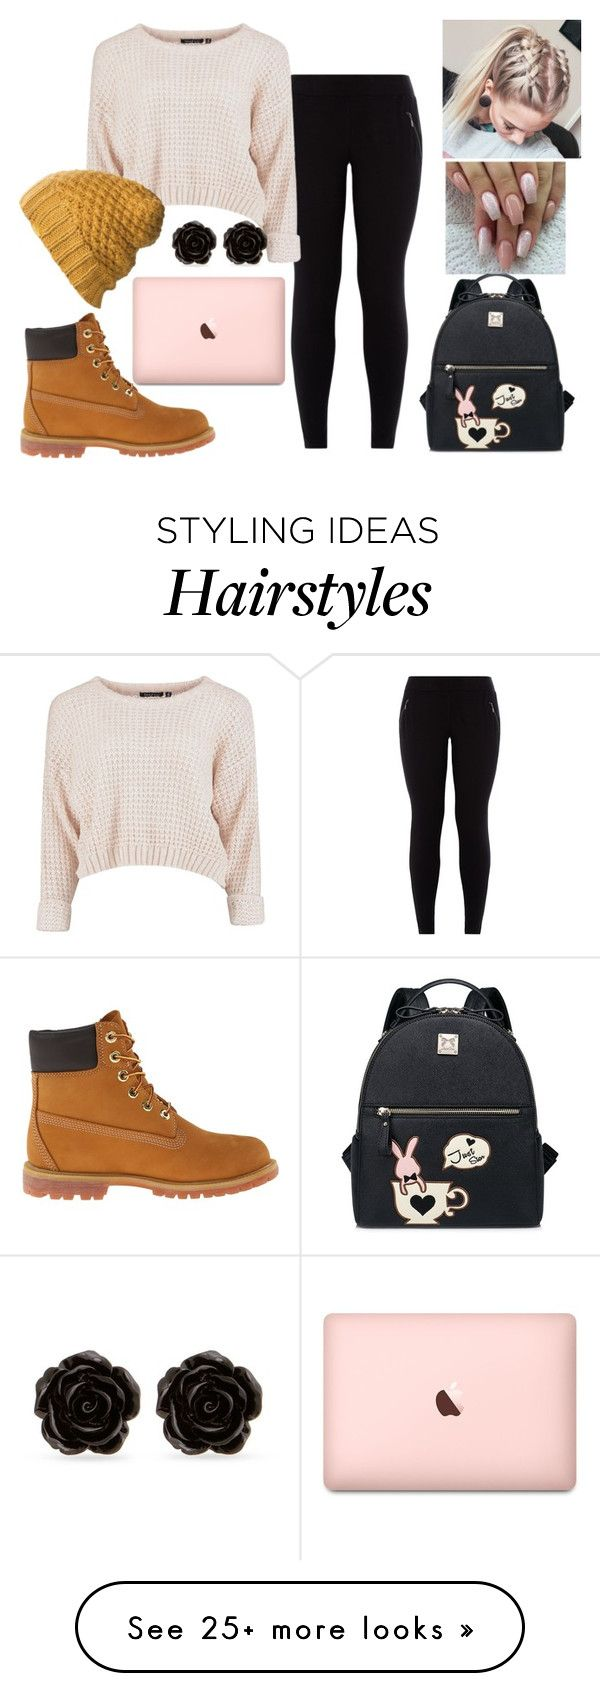 """Untitled #123"" by elizabetta-i on Polyvore featuring New Look, Timberland, Dakine and Erica Lyons"